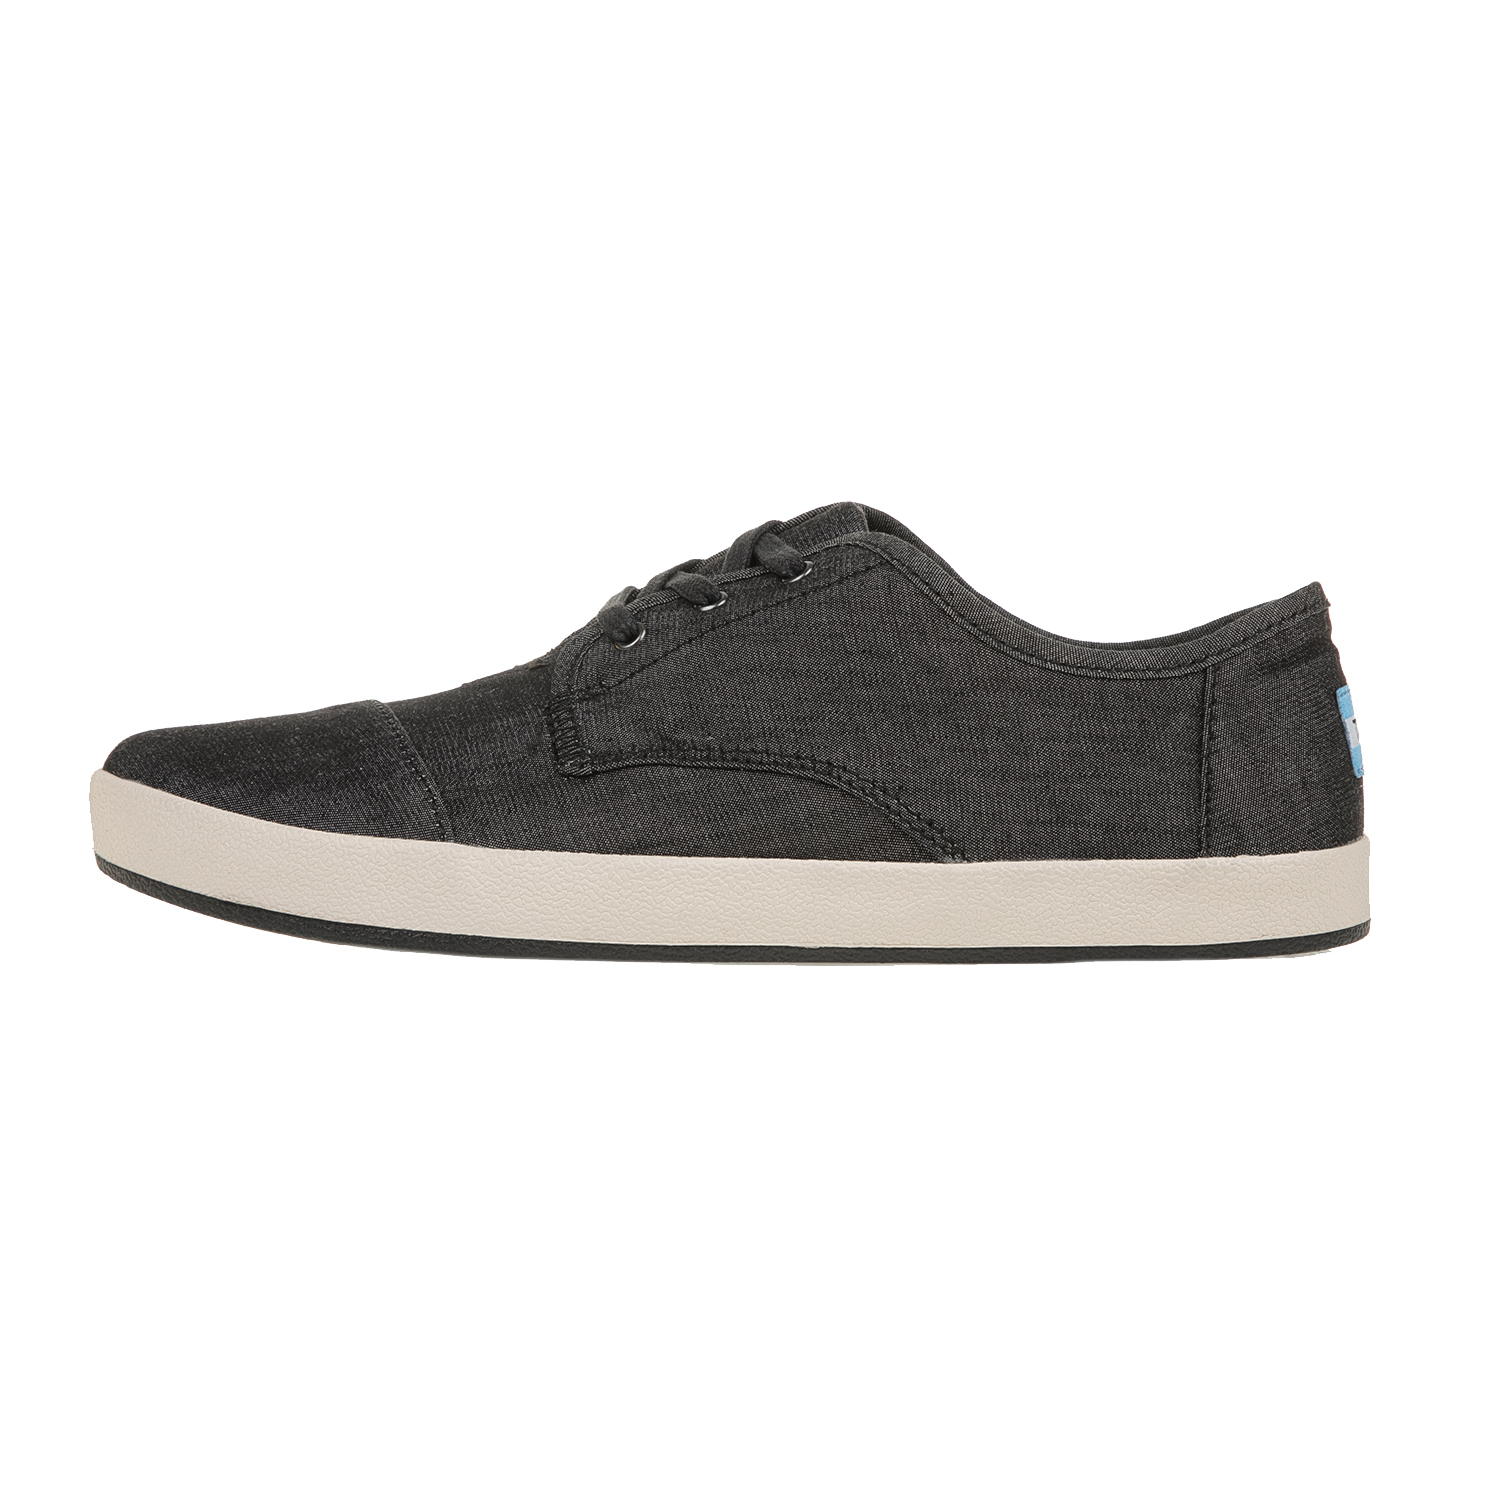 2827556c091 ... TOMS - Ανδρικά δετά παπούτσια TOMS ανθρακί 1700144.0-7107